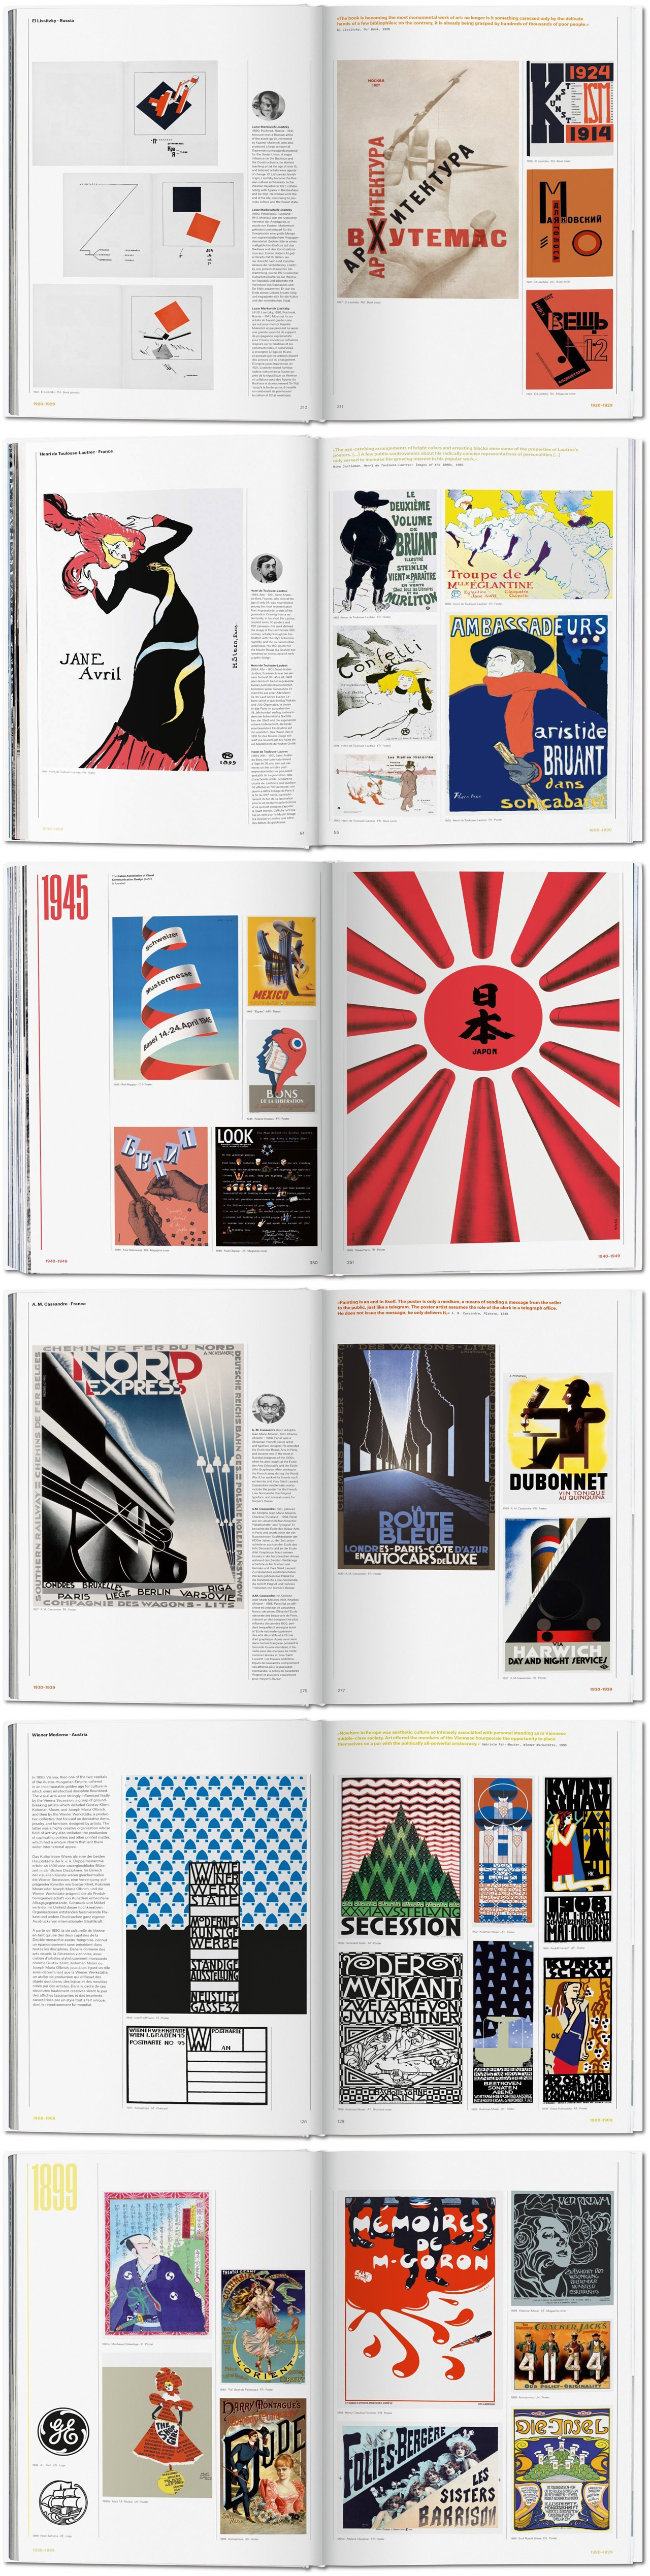 The History of Graphic Design. Vol. 1 (1890–1959)